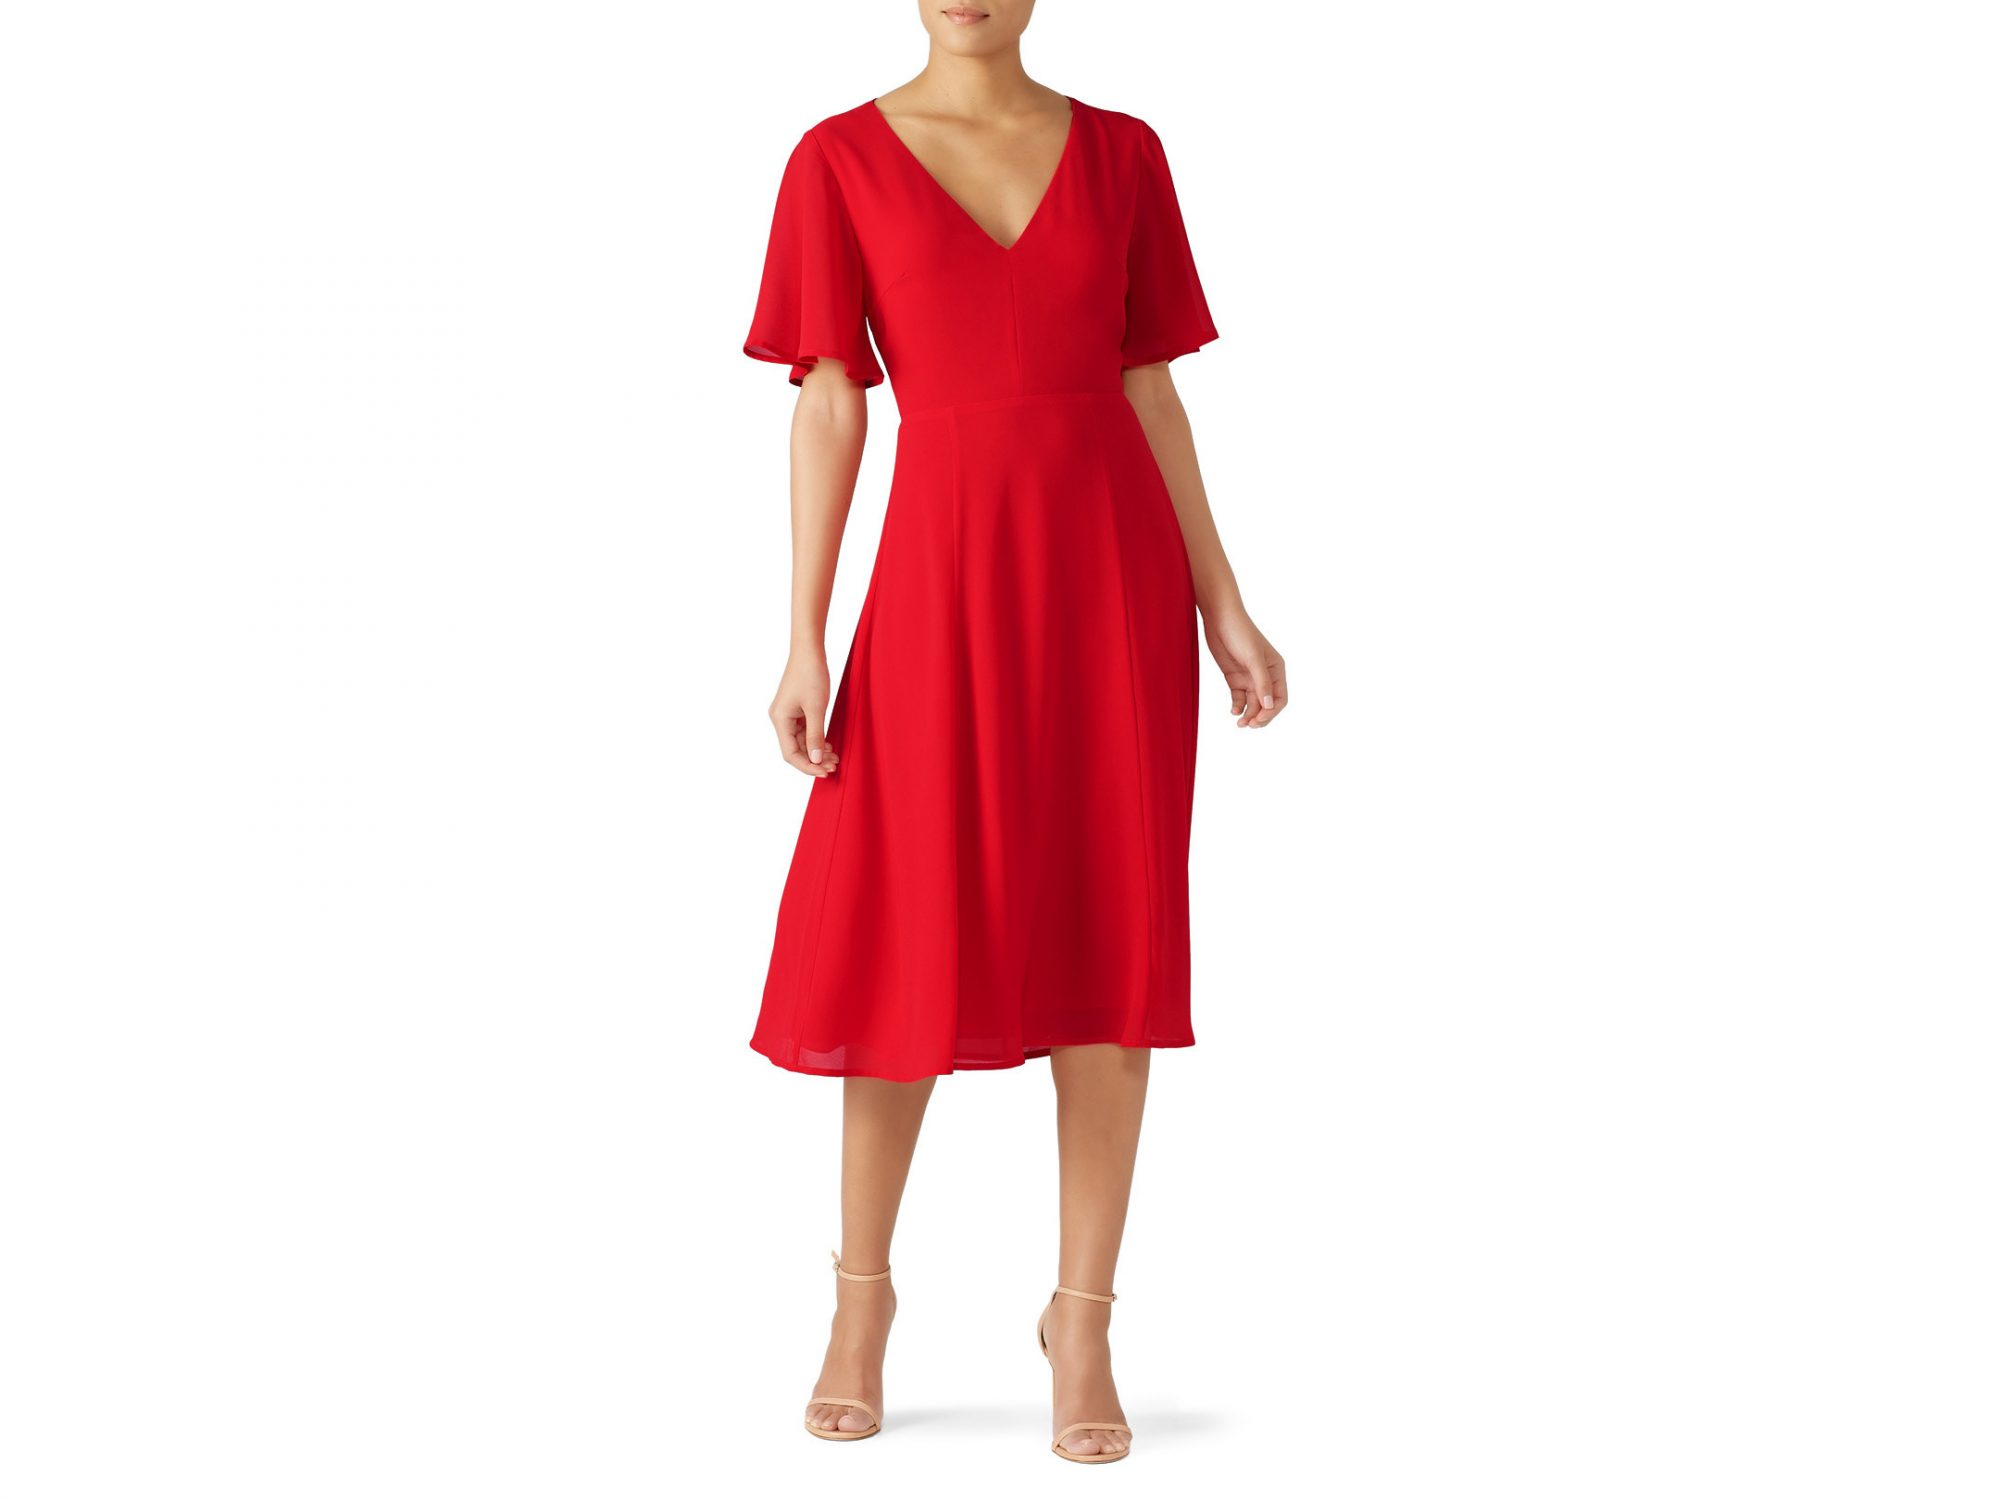 Louna Red Tie Back Dress